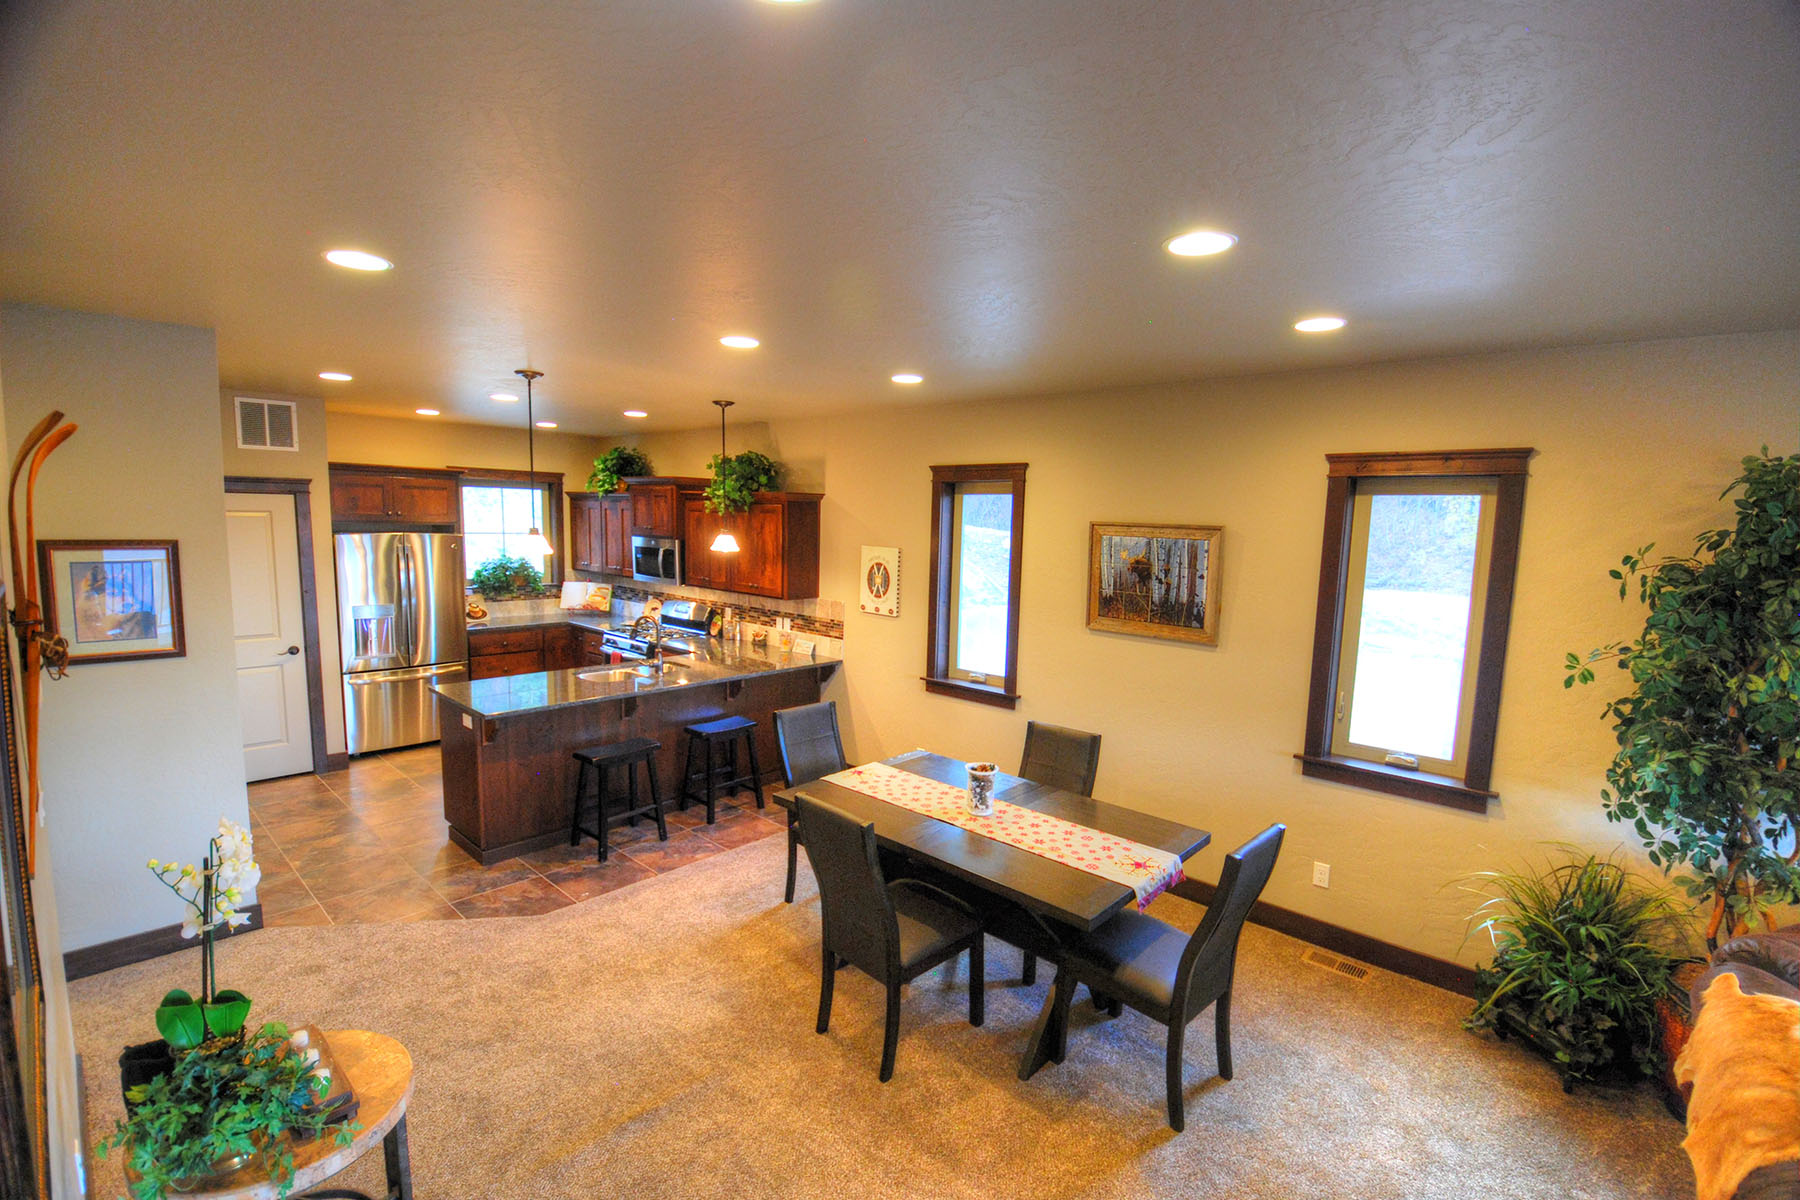 Townhouse for Sale at Great new construction in some of the best ski-in, ski-out residences 130 Chutes Lane Sandpoint, Idaho 83864 United States